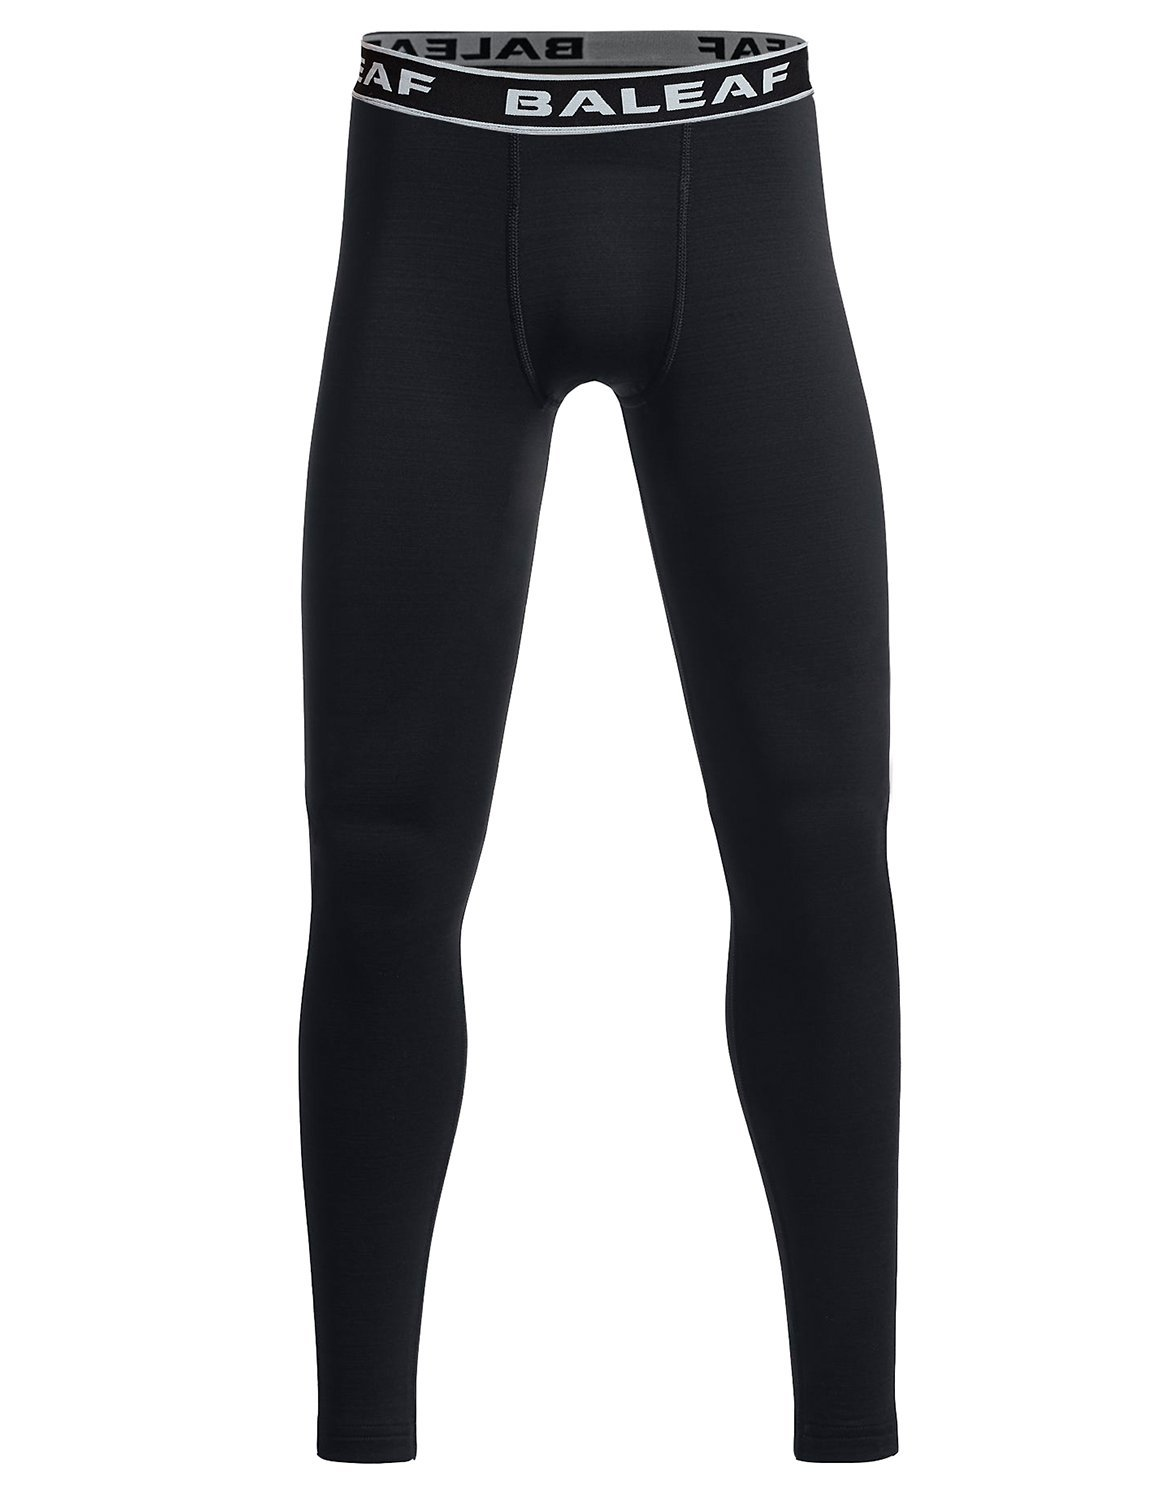 b0aba11039 Baleaf Youth Boys' Compression Thermal Baselayer Tights Fleece Leggings  product image